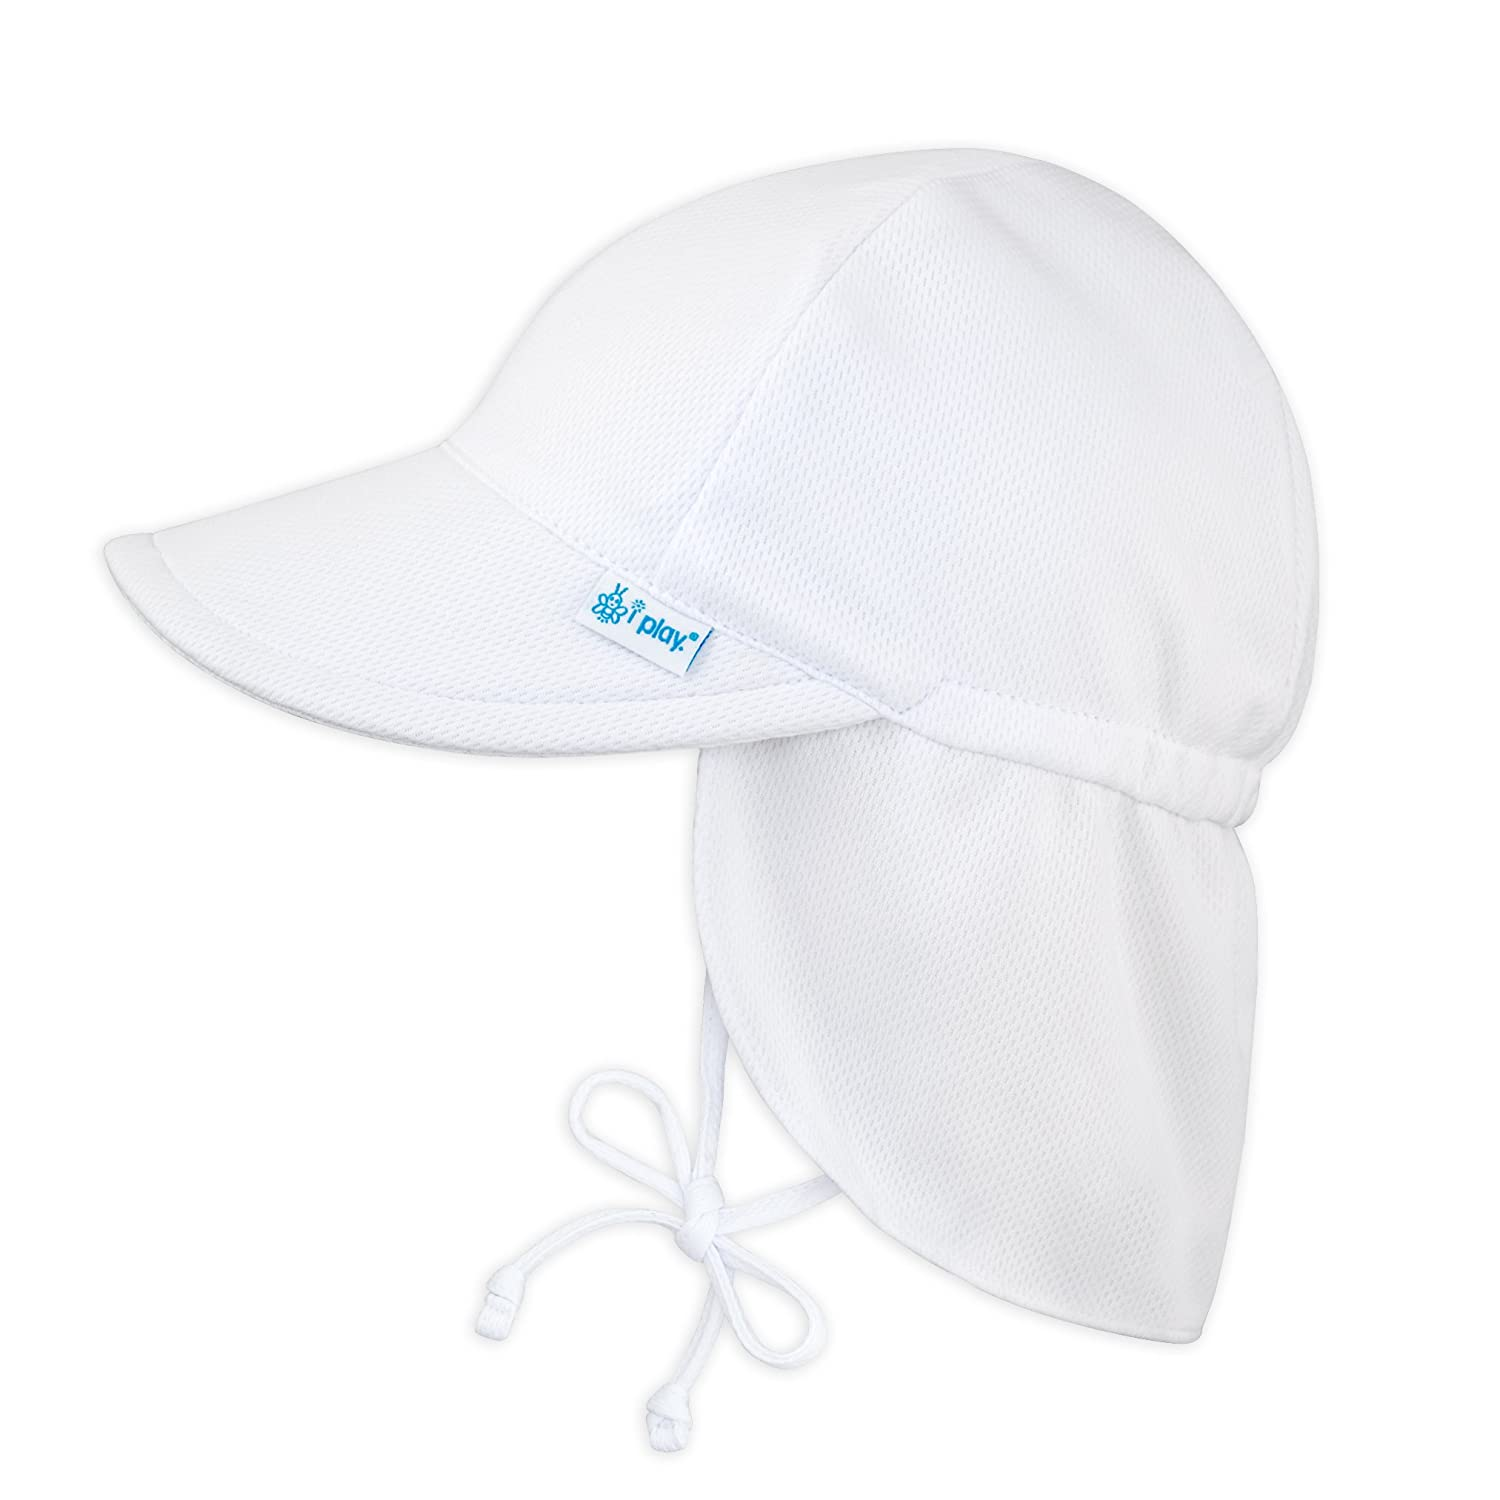 i play UV Breathable Swim and Sun Flap Hat, 2 to 4 Years, White JellyBean/First Steps 747132-0000-53